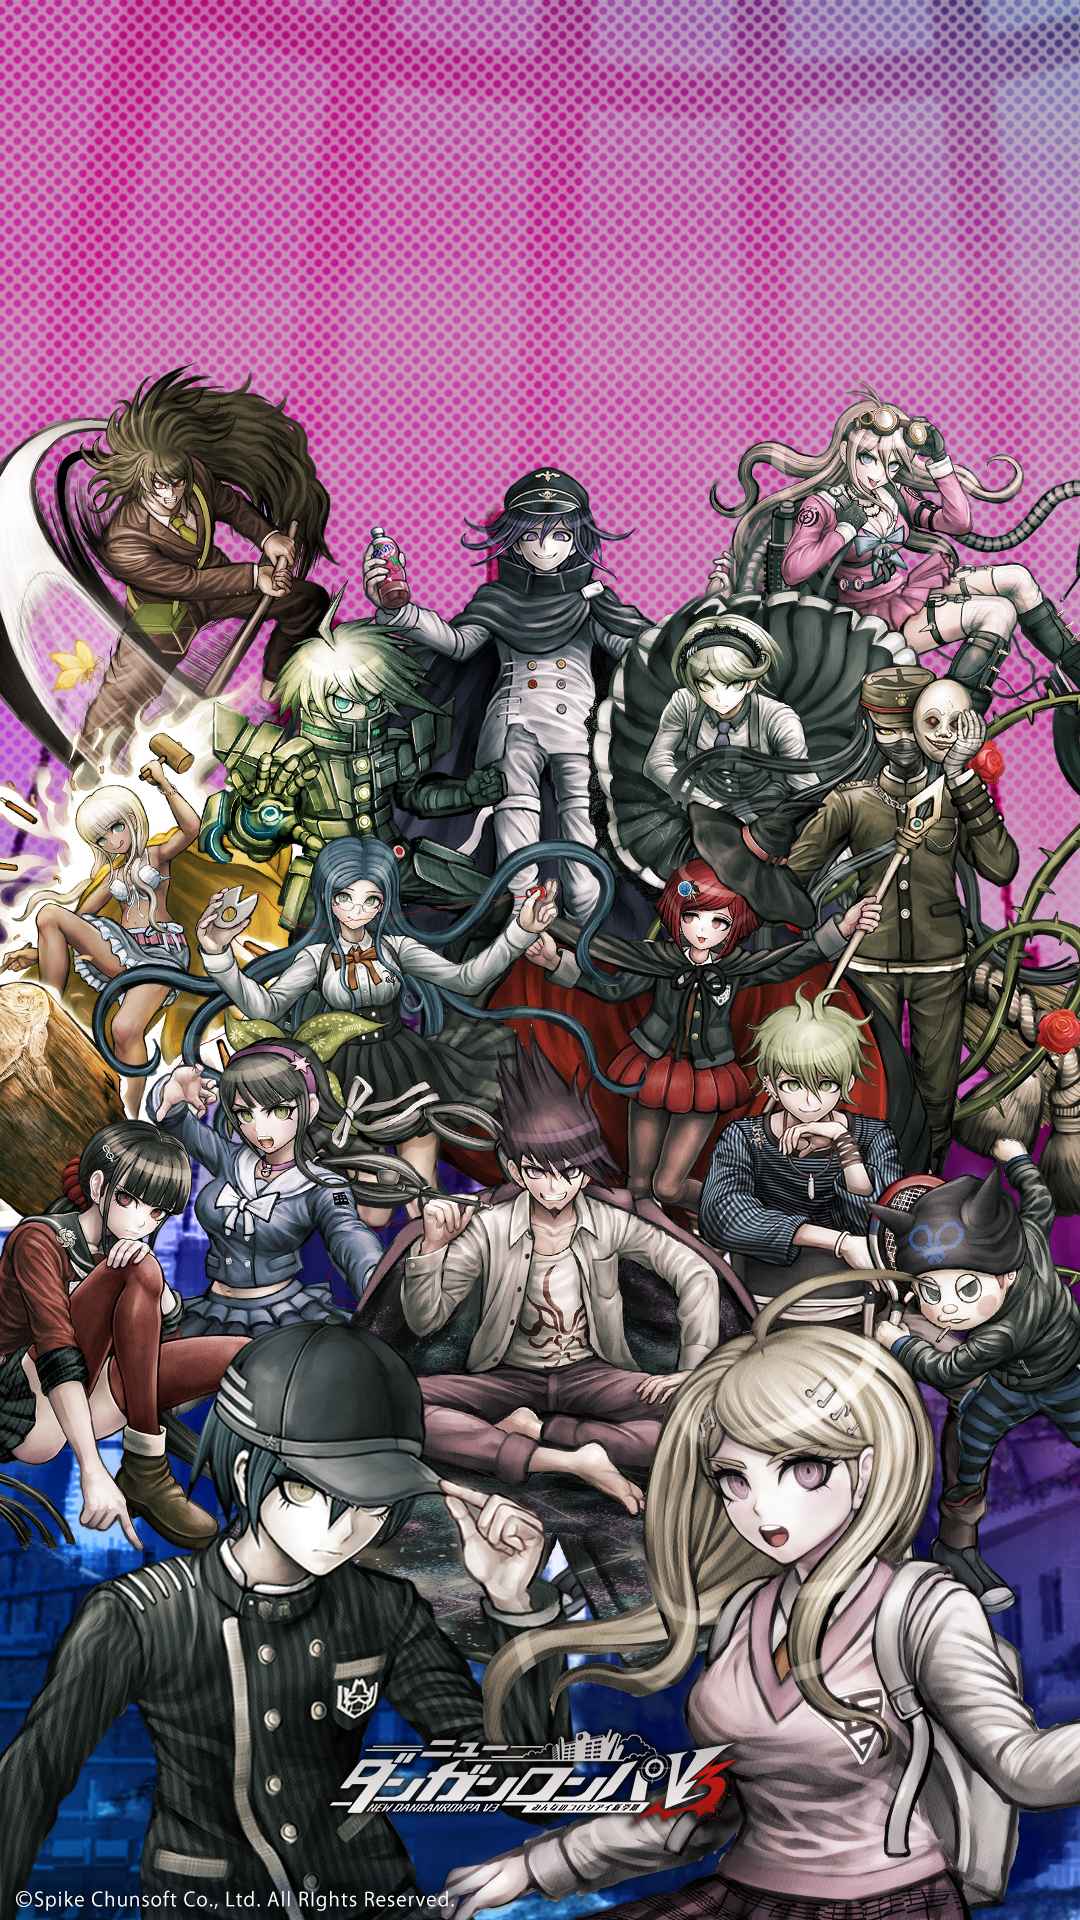 Ndrv3 Wallpaper Posted By Sarah Cunningham And thank u everyone for ur kind words ^_^. ndrv3 wallpaper posted by sarah cunningham